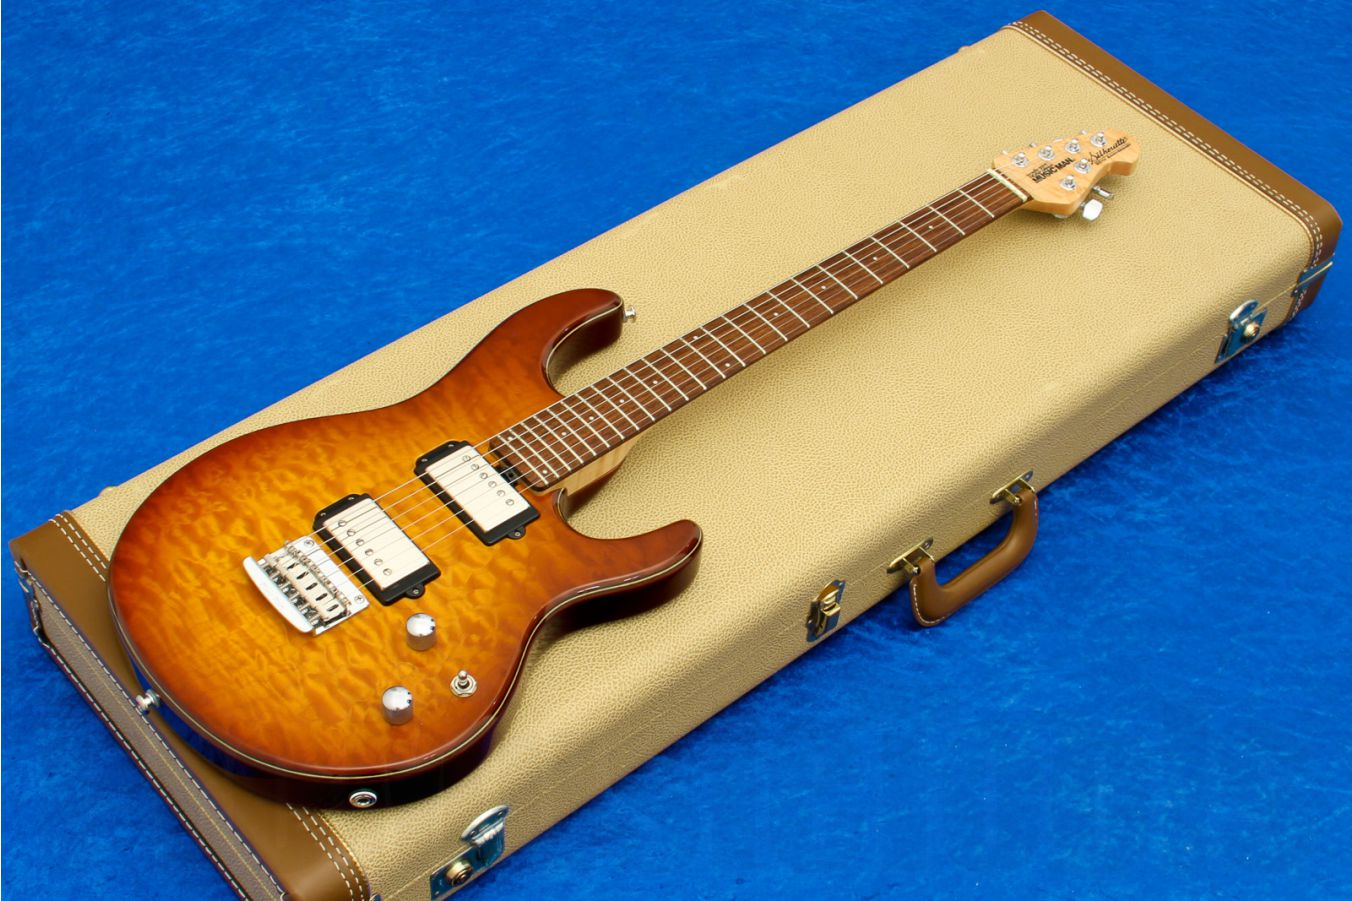 Music Man USA Silhouette HH STD - Caramel Burst 20th Anniversary Limited Edition